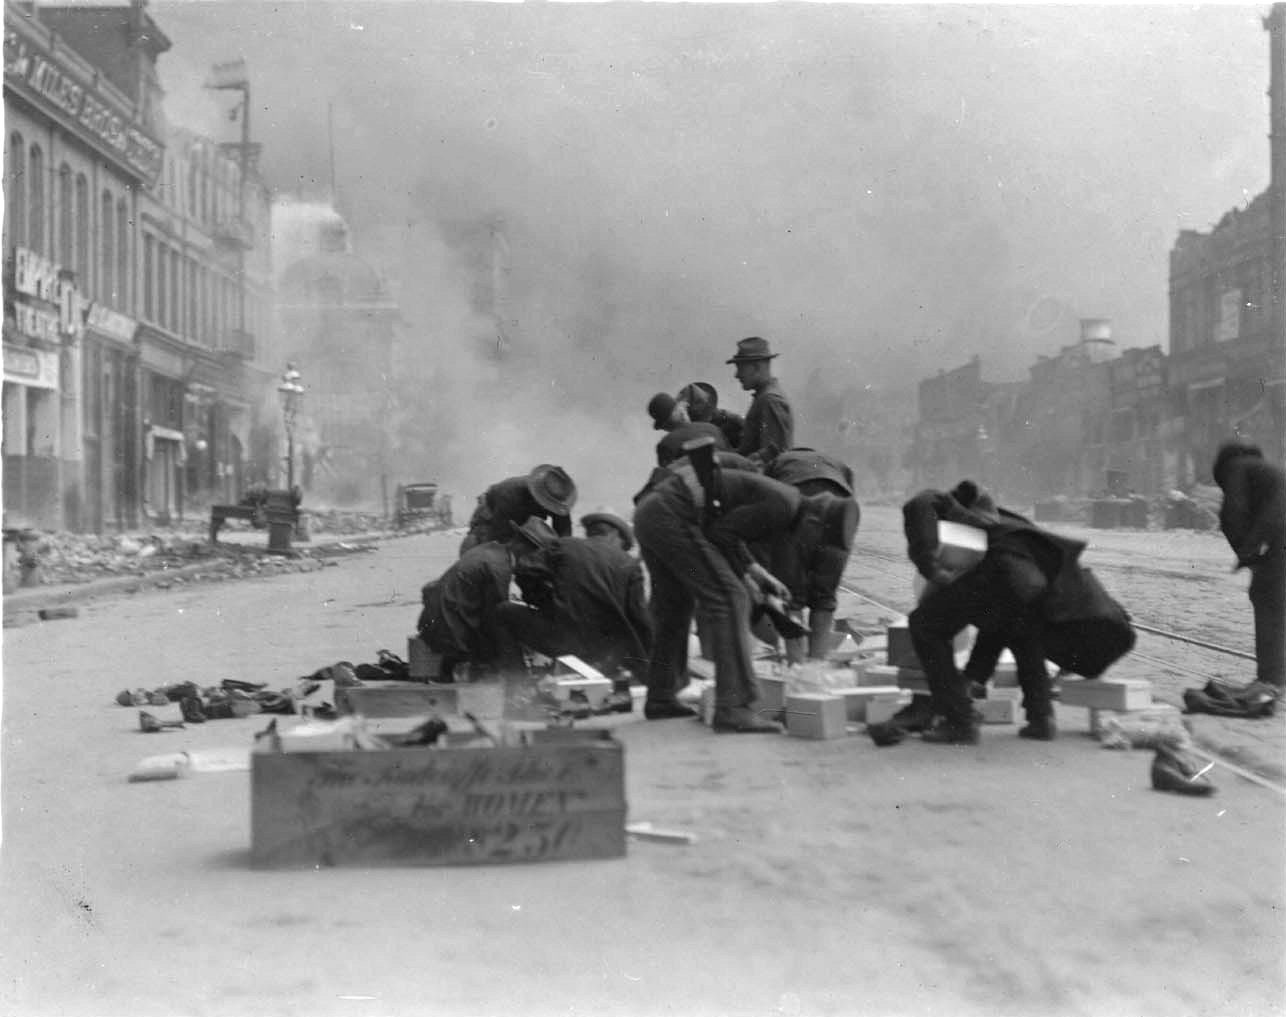 Soldiers of the 22nd Infantry Regiment looting after the 1906 San Francisco earthquake and fire, 1906.